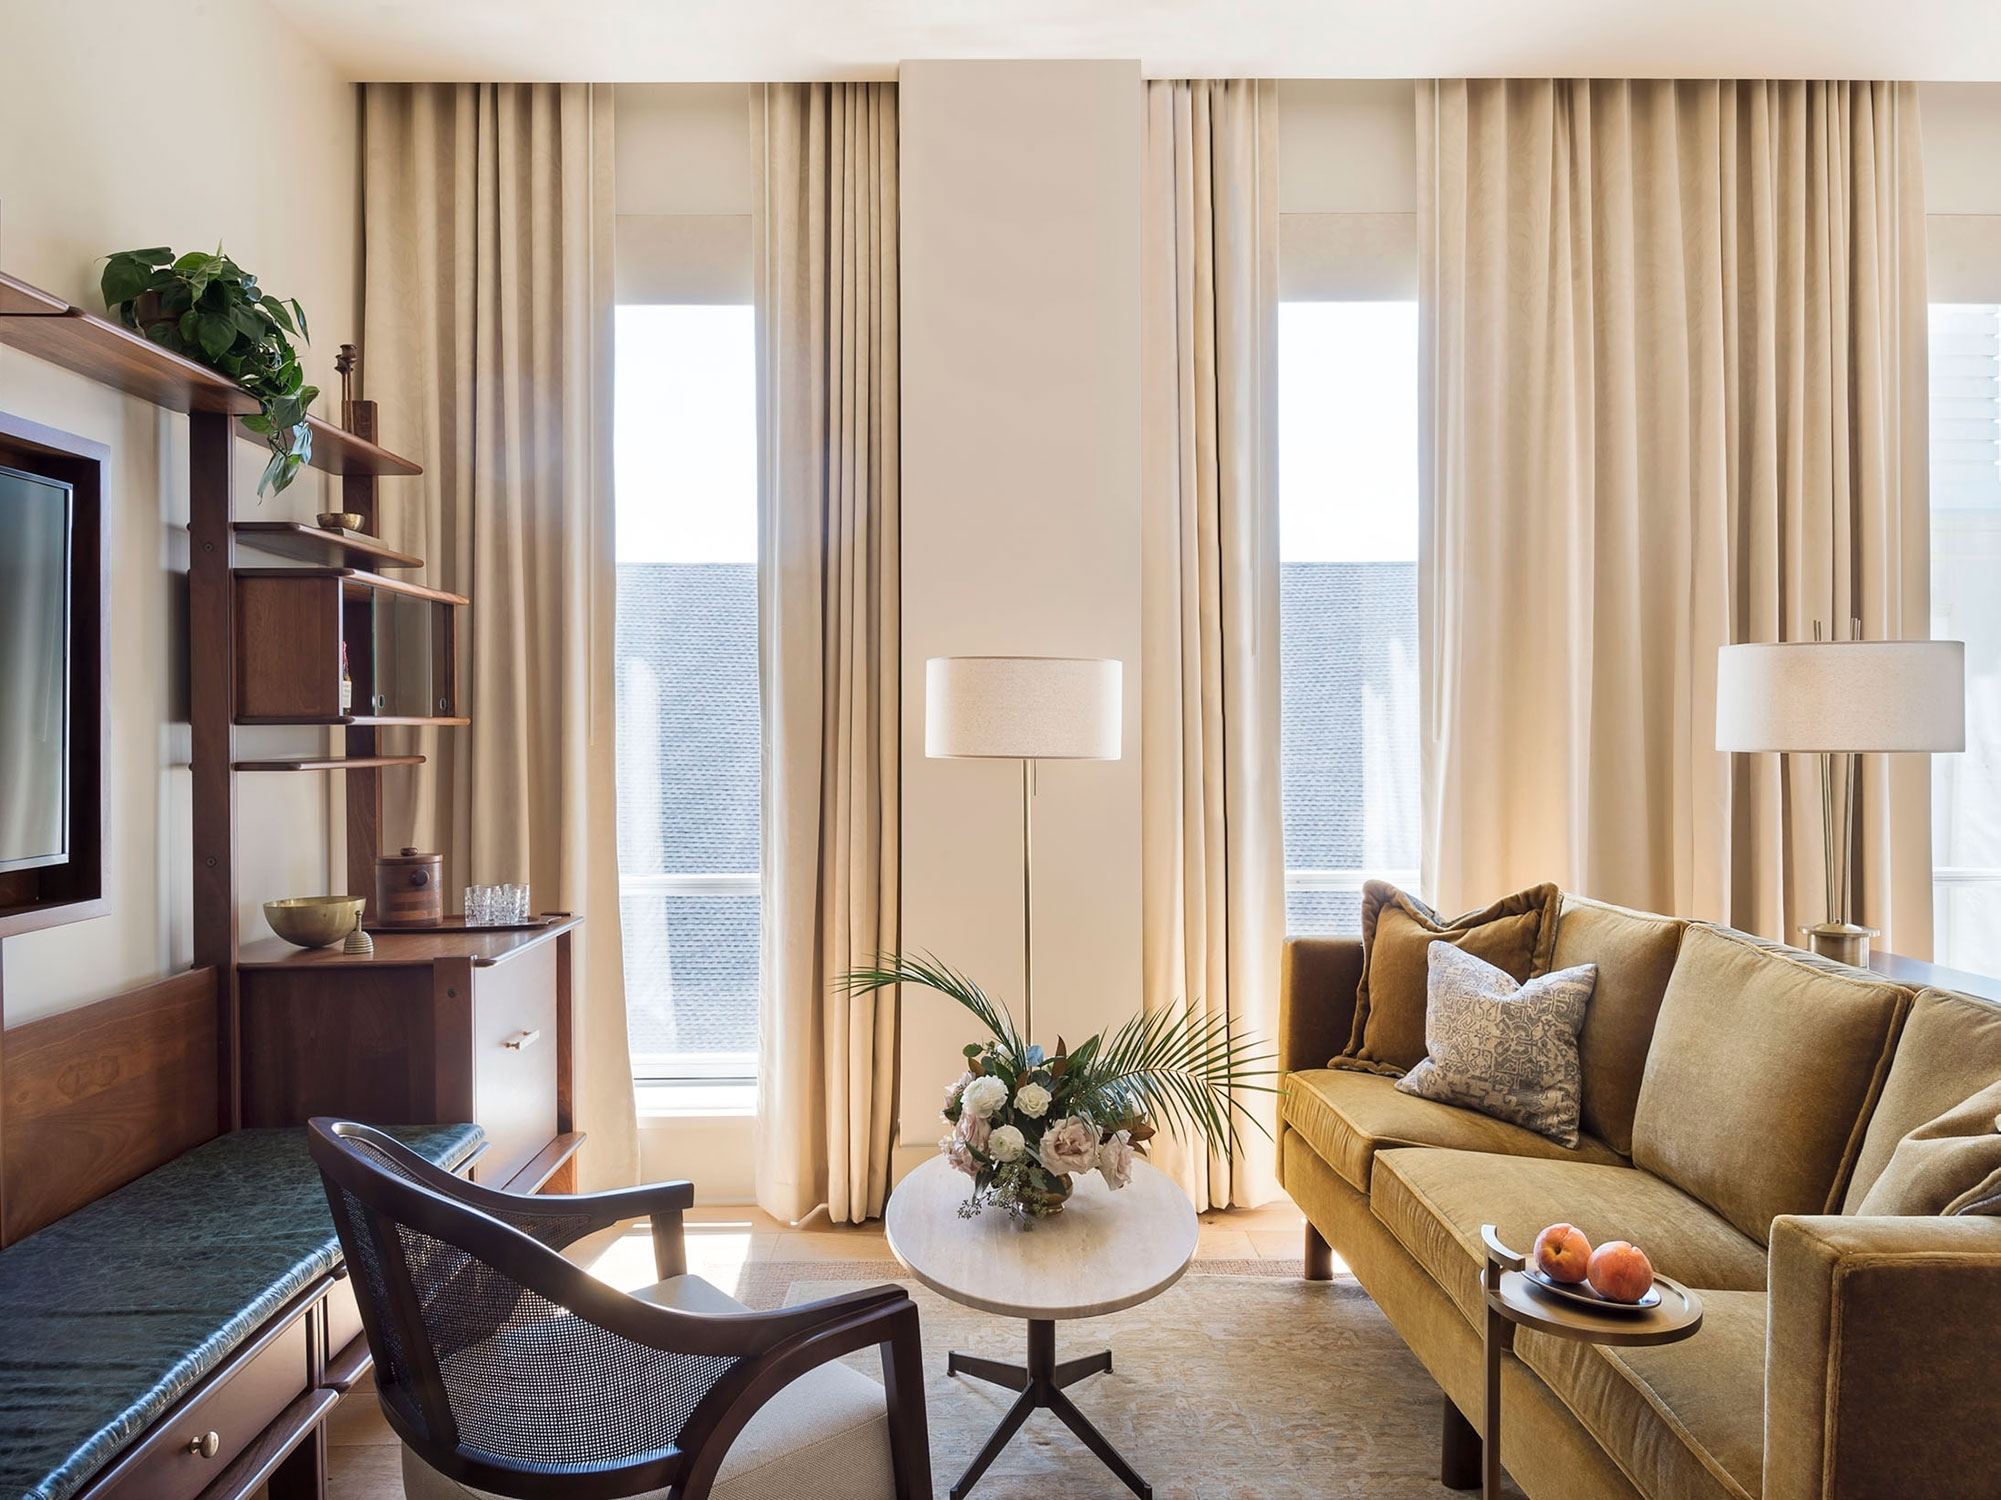 the dewberry hotel workstead hospitality interior design project